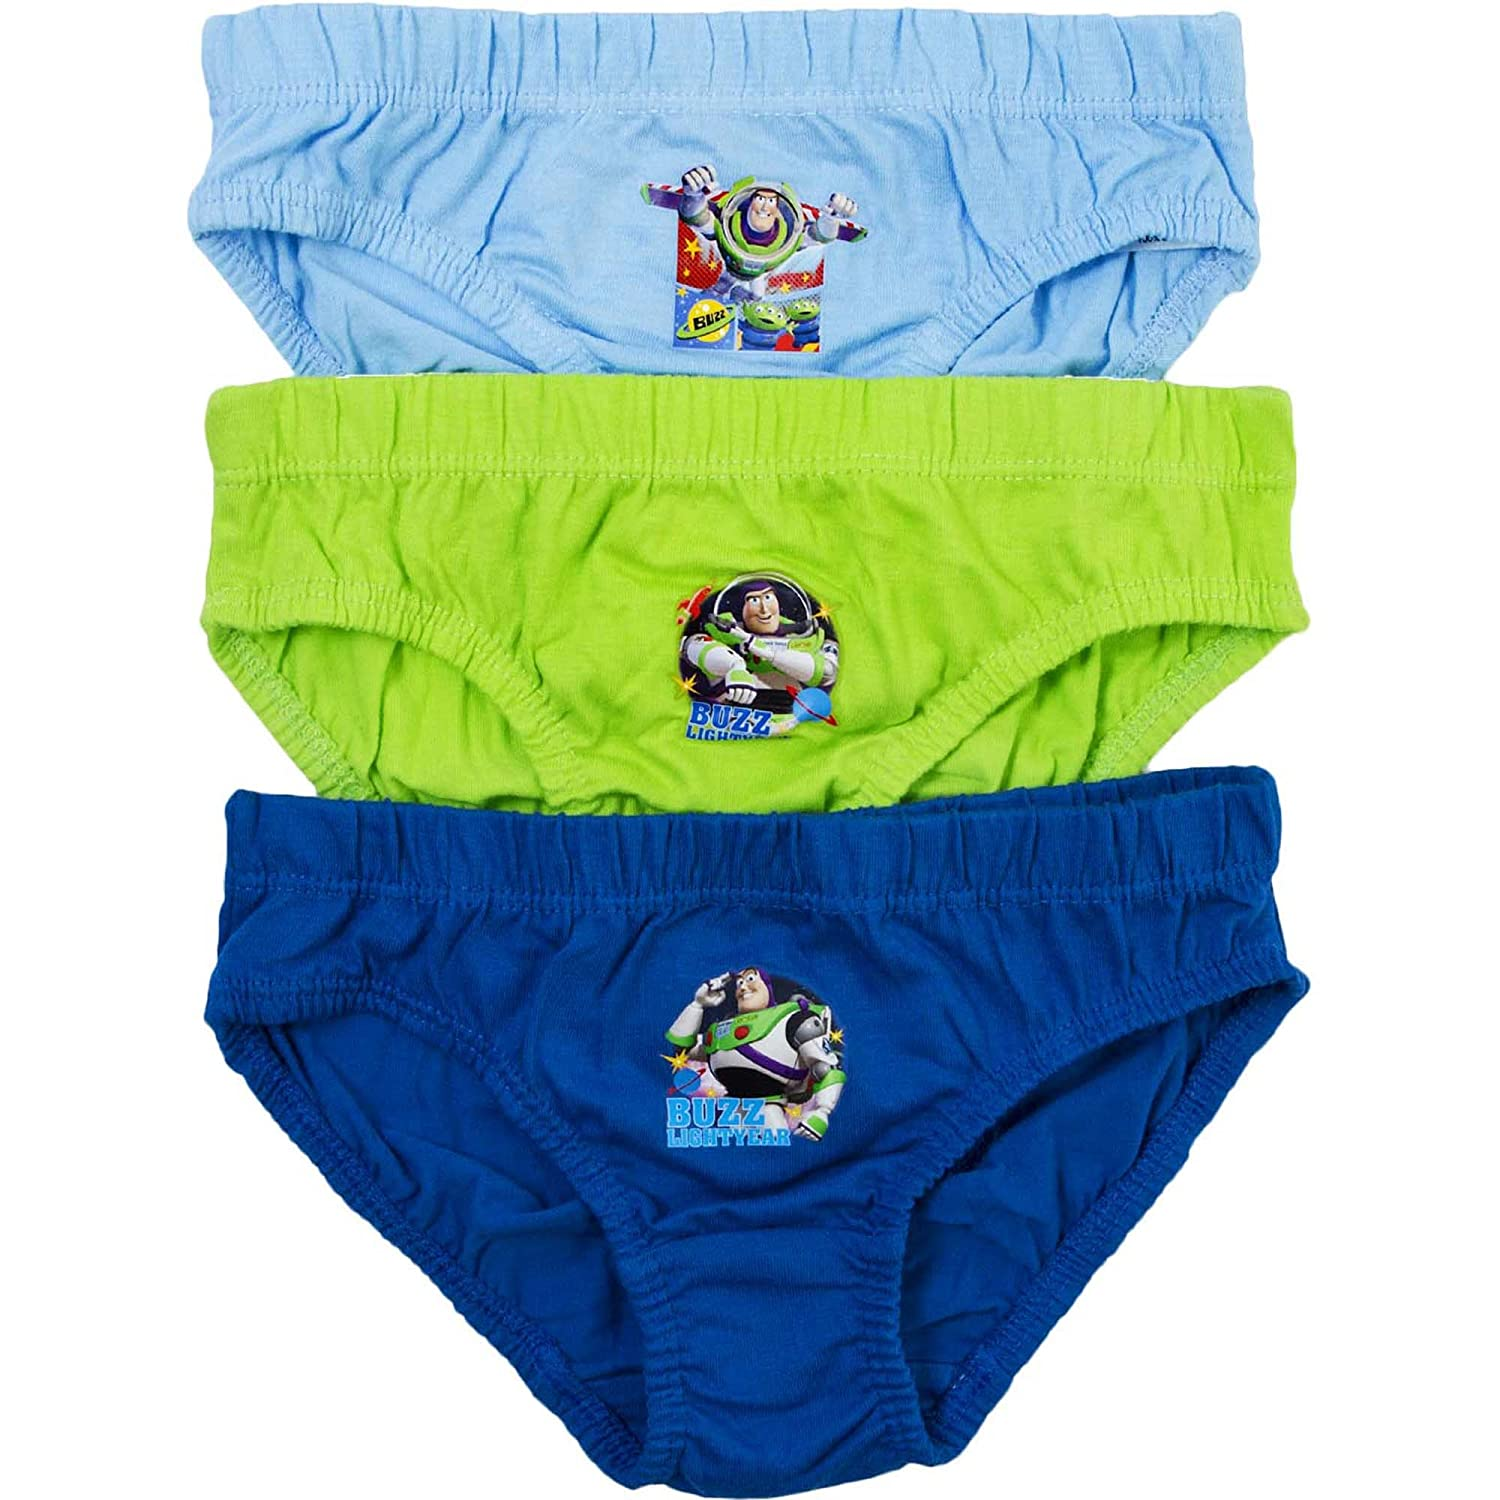 Buzz Lightyear Boy's Disney Toy Story Hipster Briefs Pants Set (3 Pair Pack)